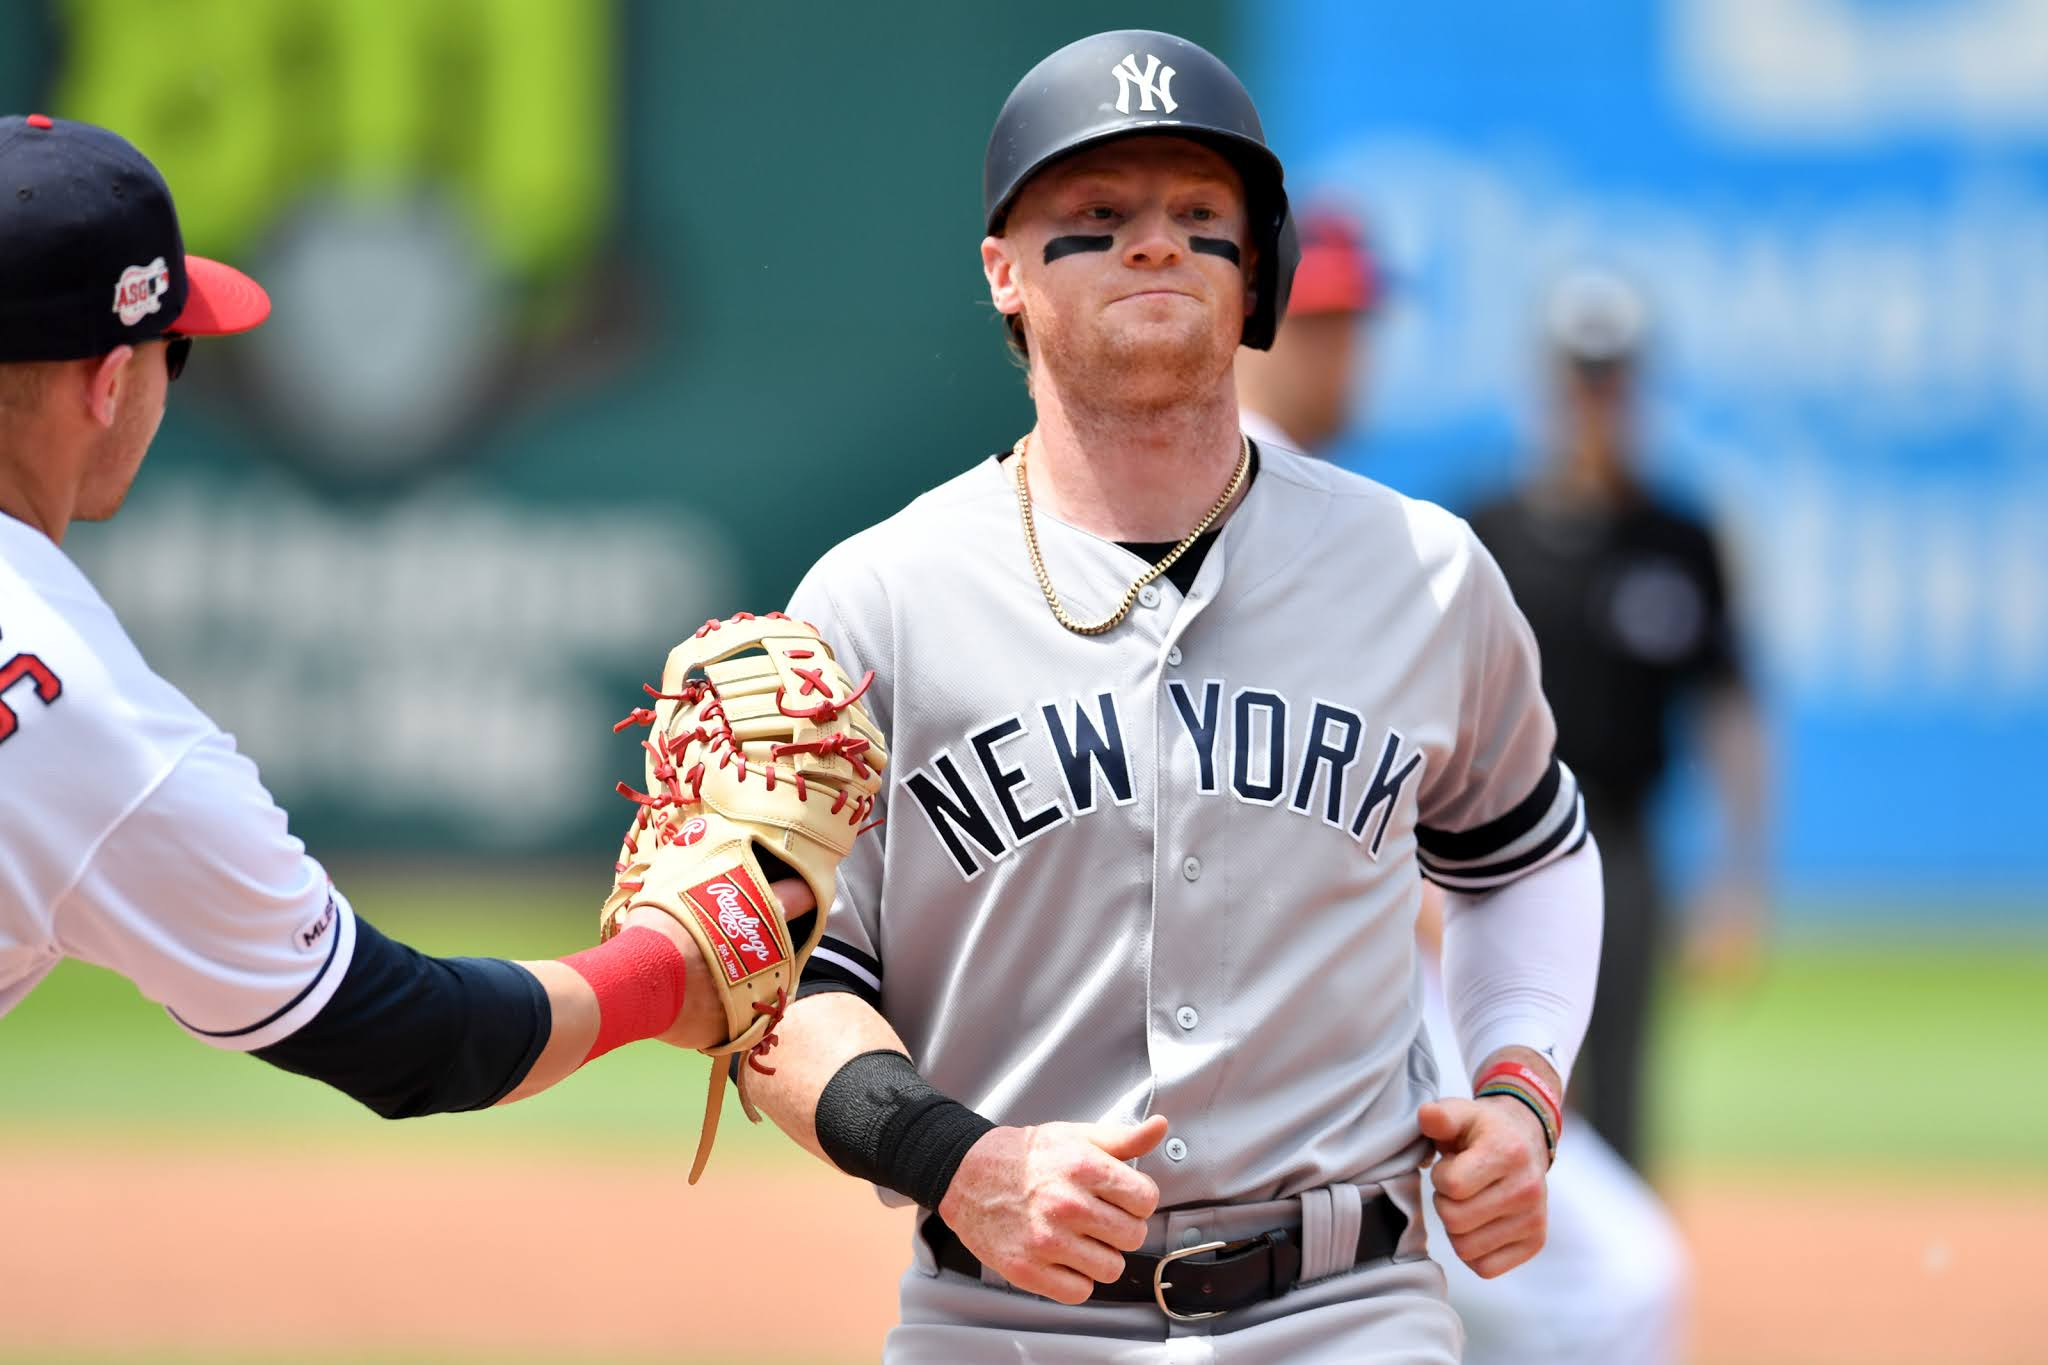 Boone: LeMahieu is Yankees' No. 1 priority this winter